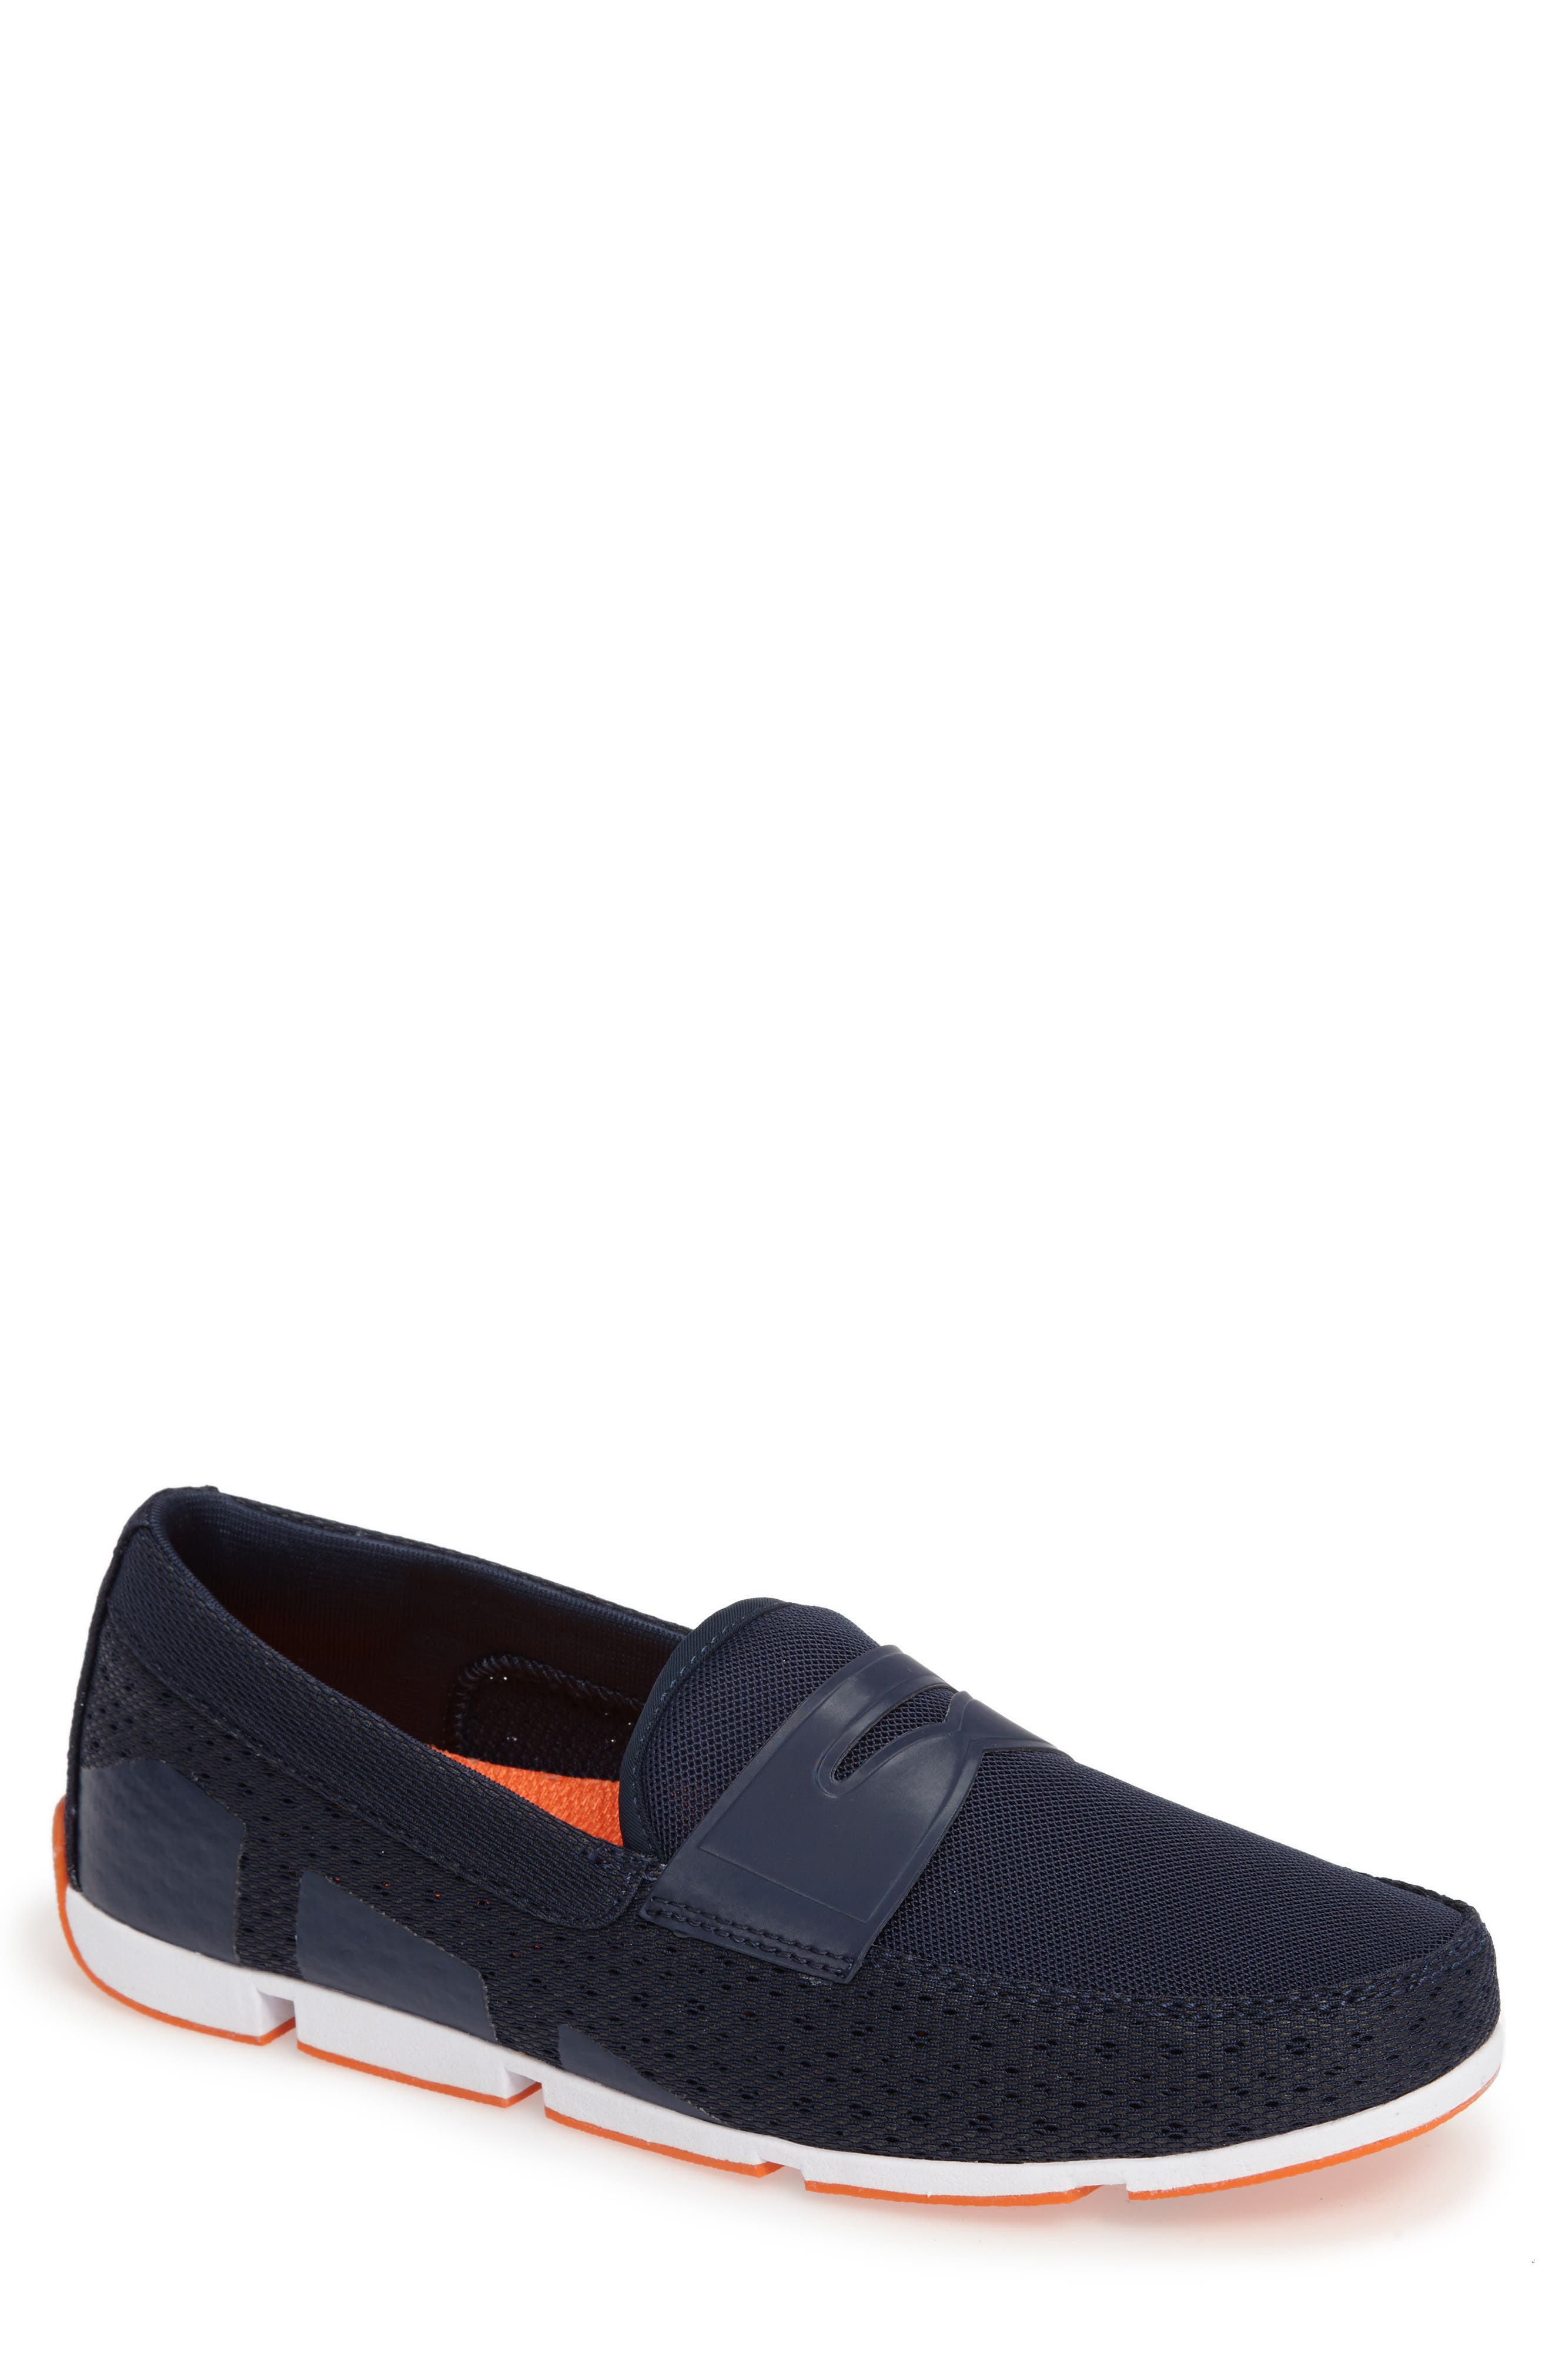 Breeze Penny Loafer,                             Main thumbnail 4, color,